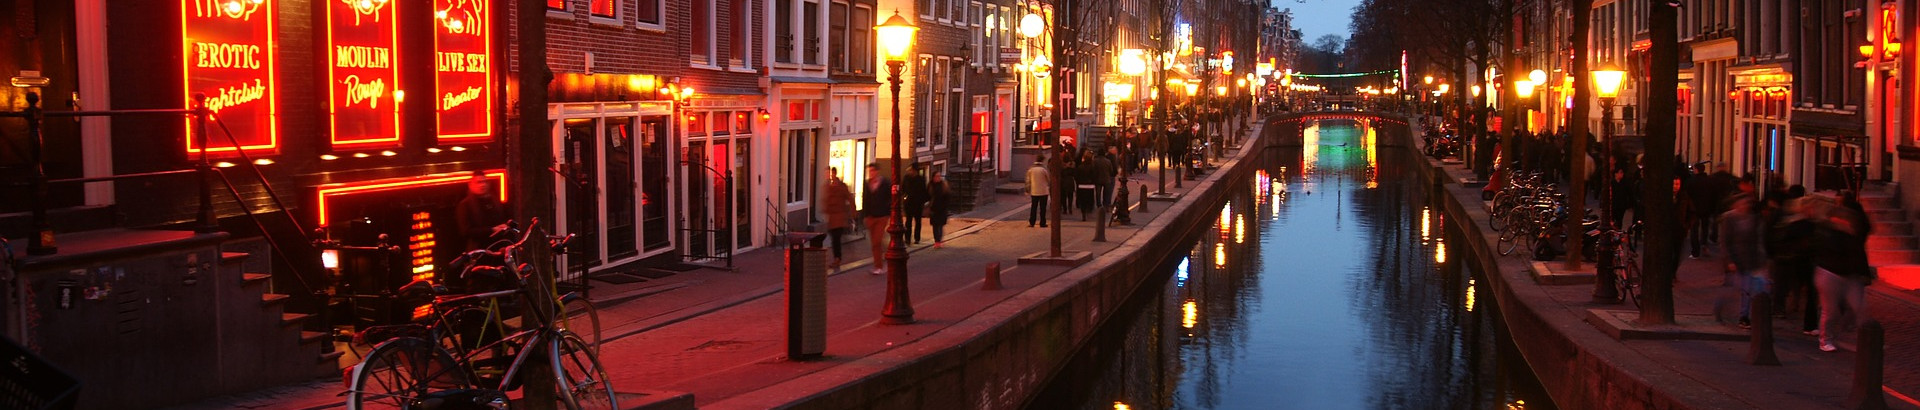 //images.ctfassets.net/r1xeyn8lz4i6/12PaYkUxz68KwY4i0MwQSi/993723f7772b024ee5a4f9d649ad9afc/Amsterdam_Red_light_district_STOCK.jpg